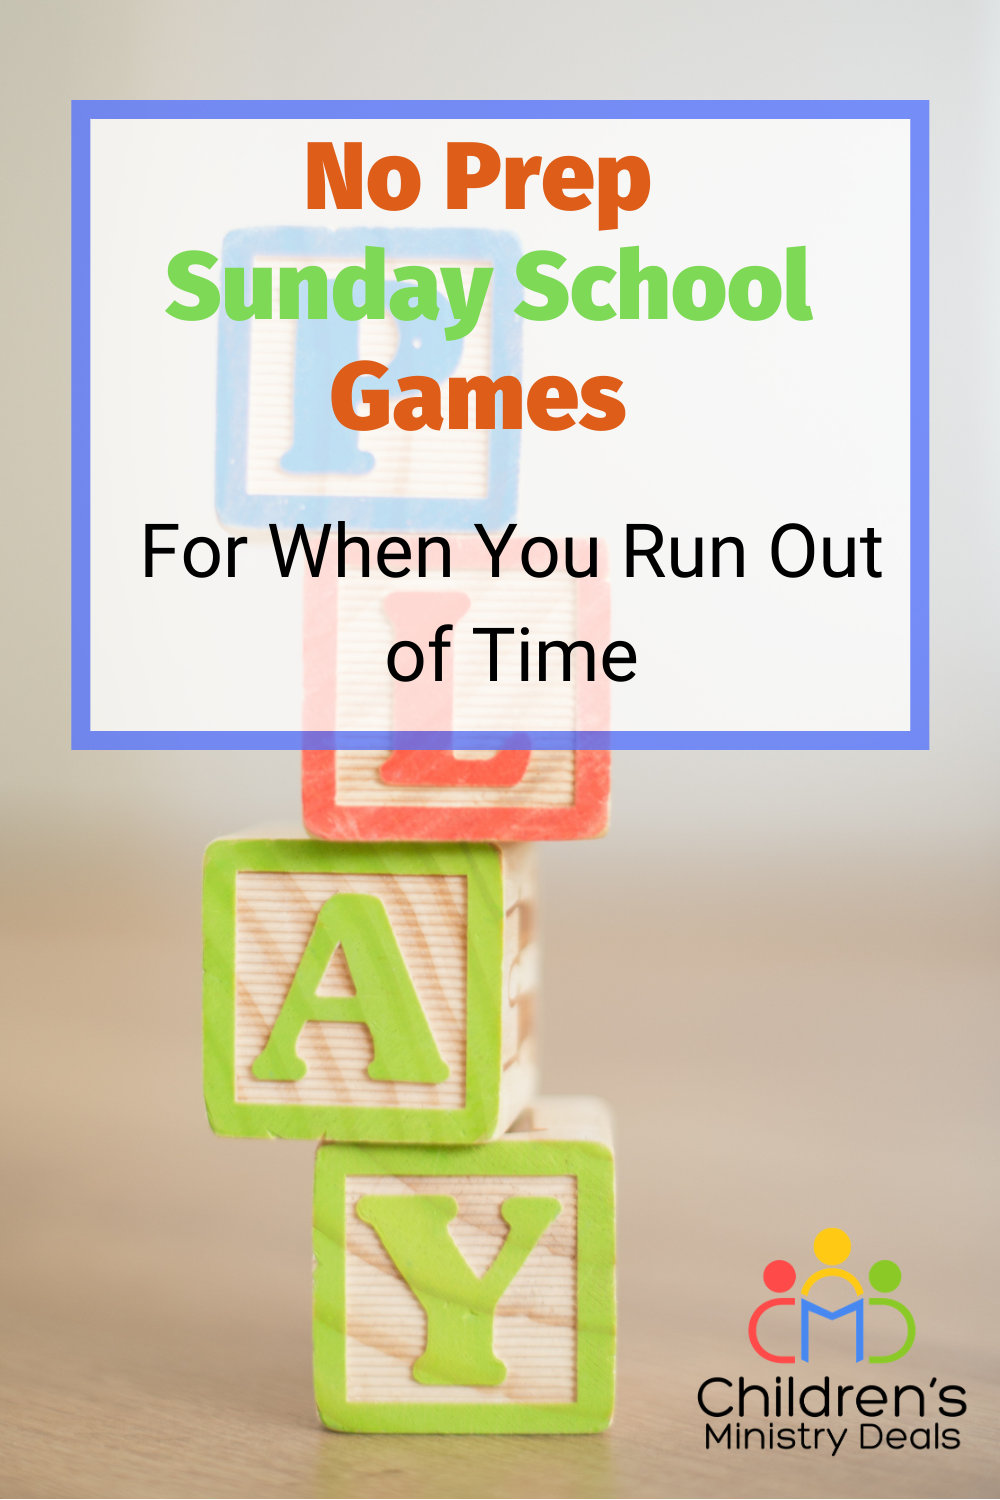 No Prep Sunday School Games for When You Run Out of Time